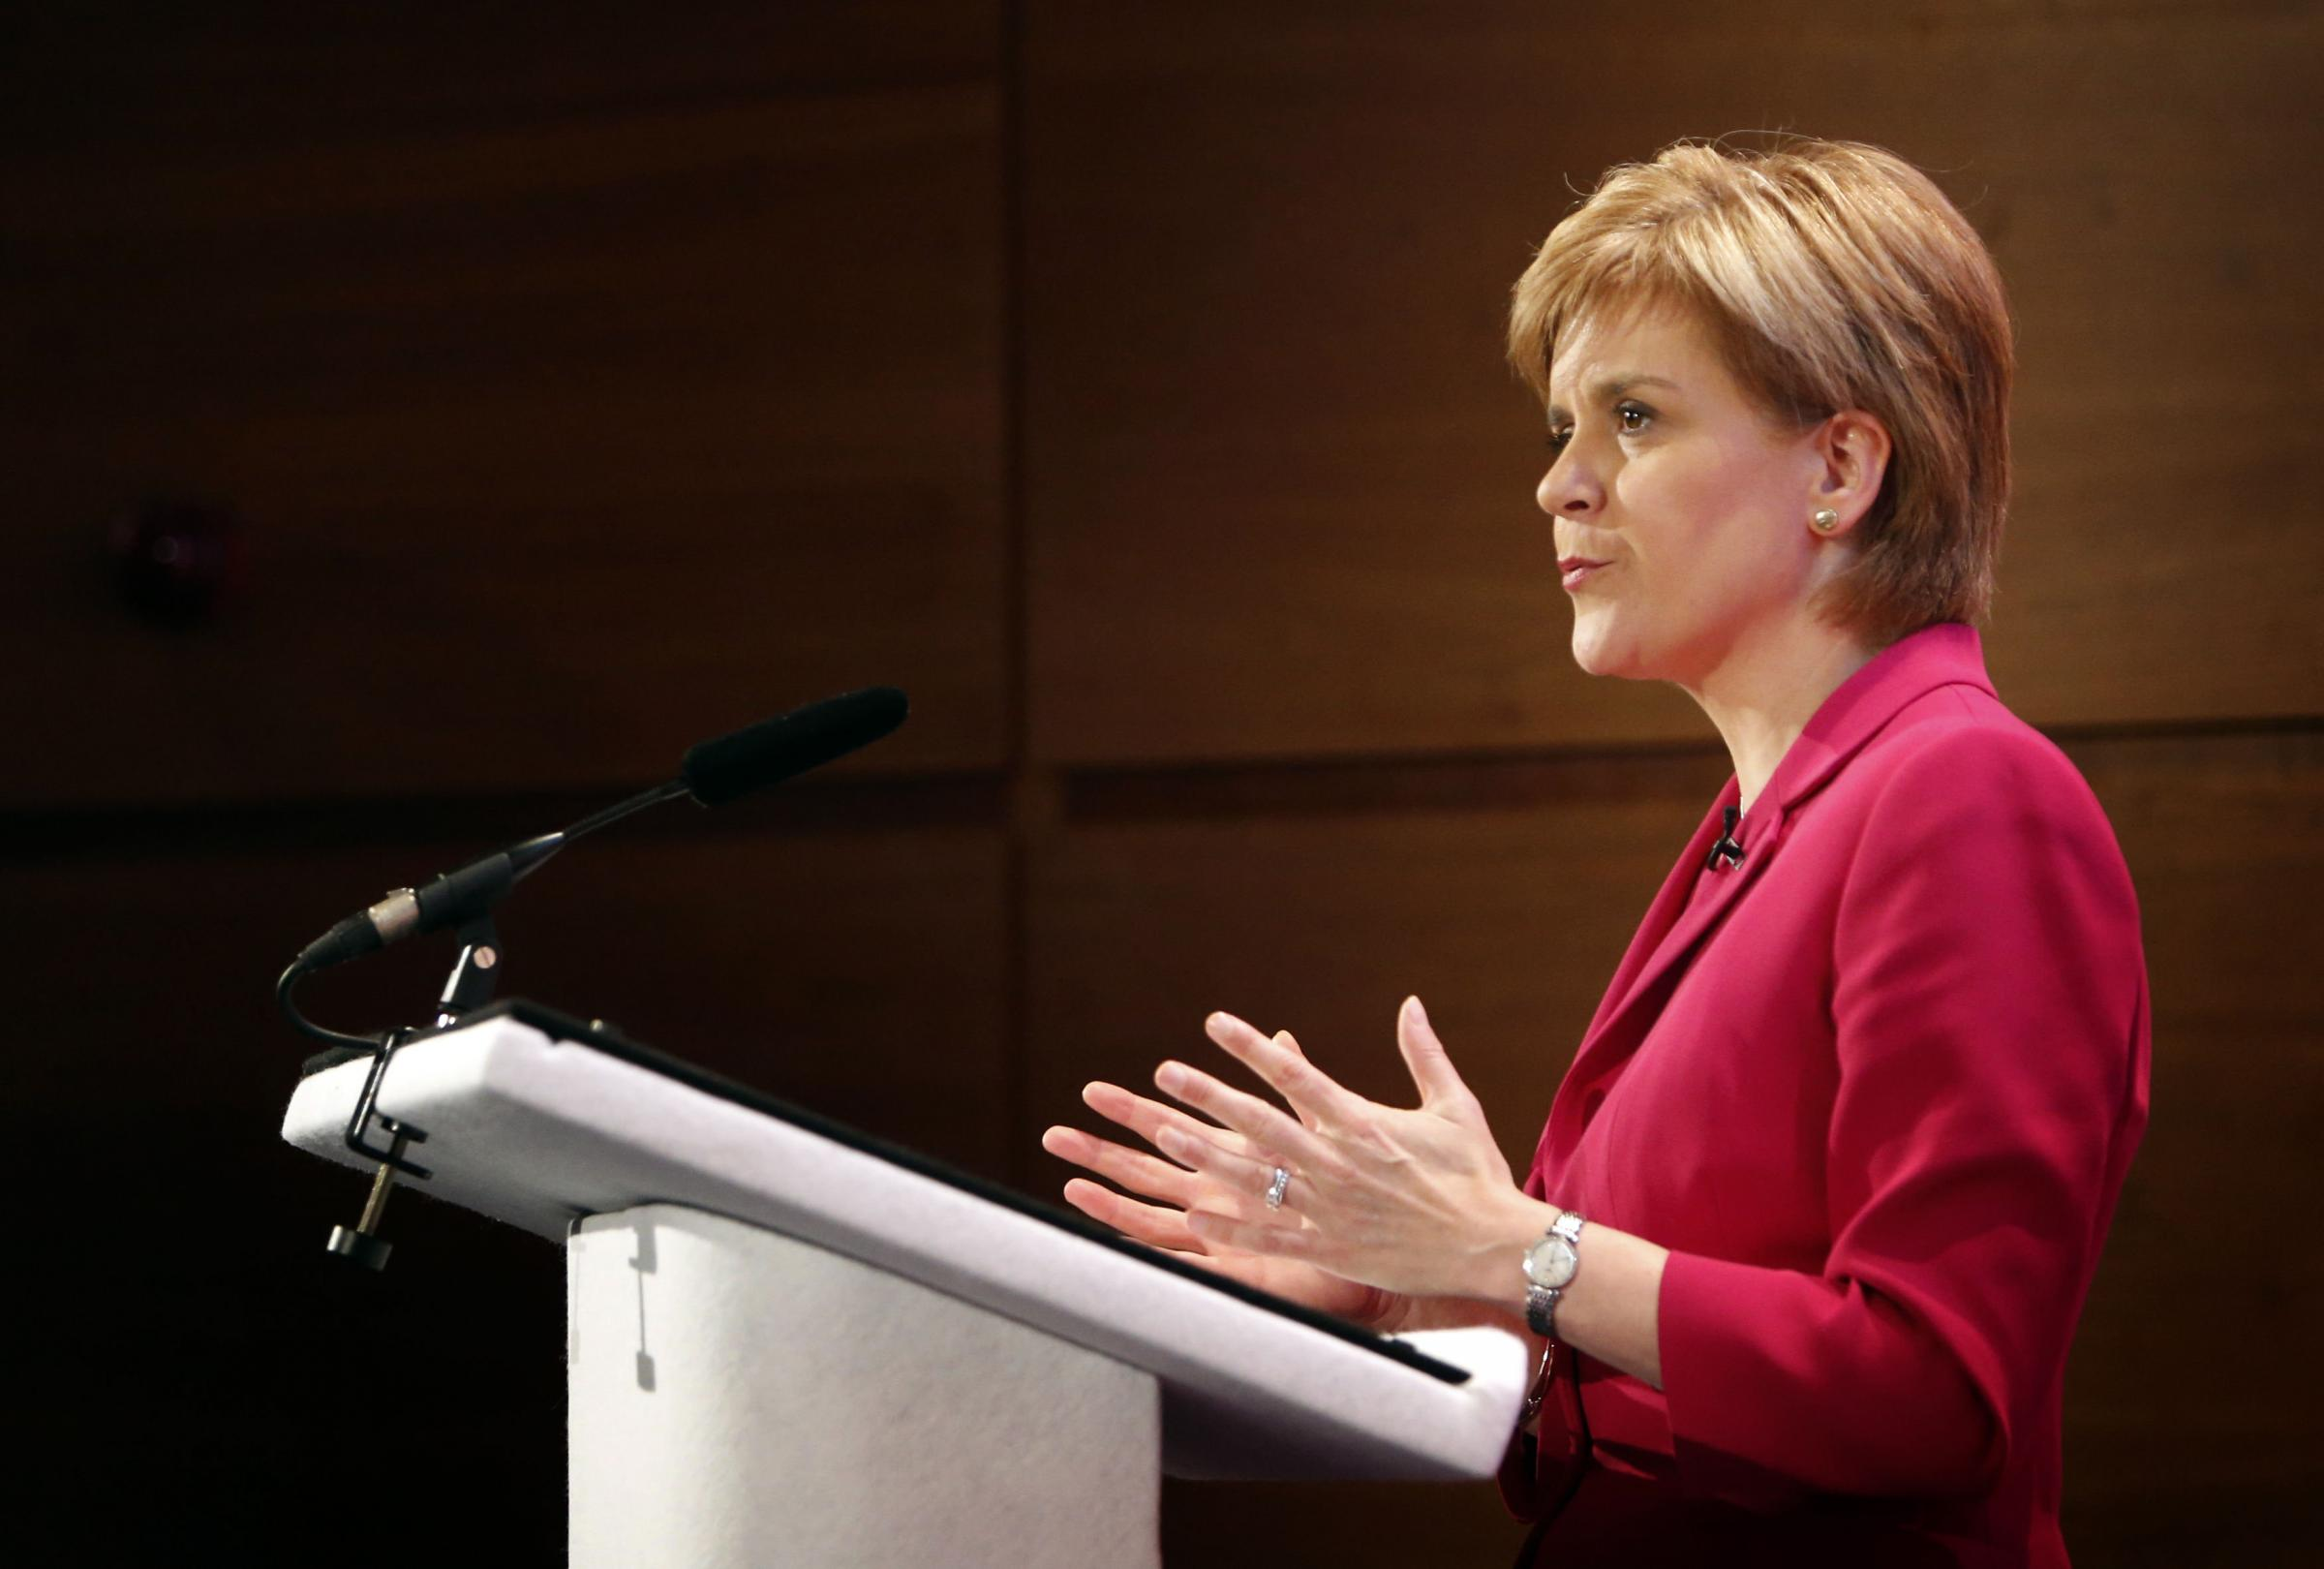 The First Minister will address MSPs after the Easter recess